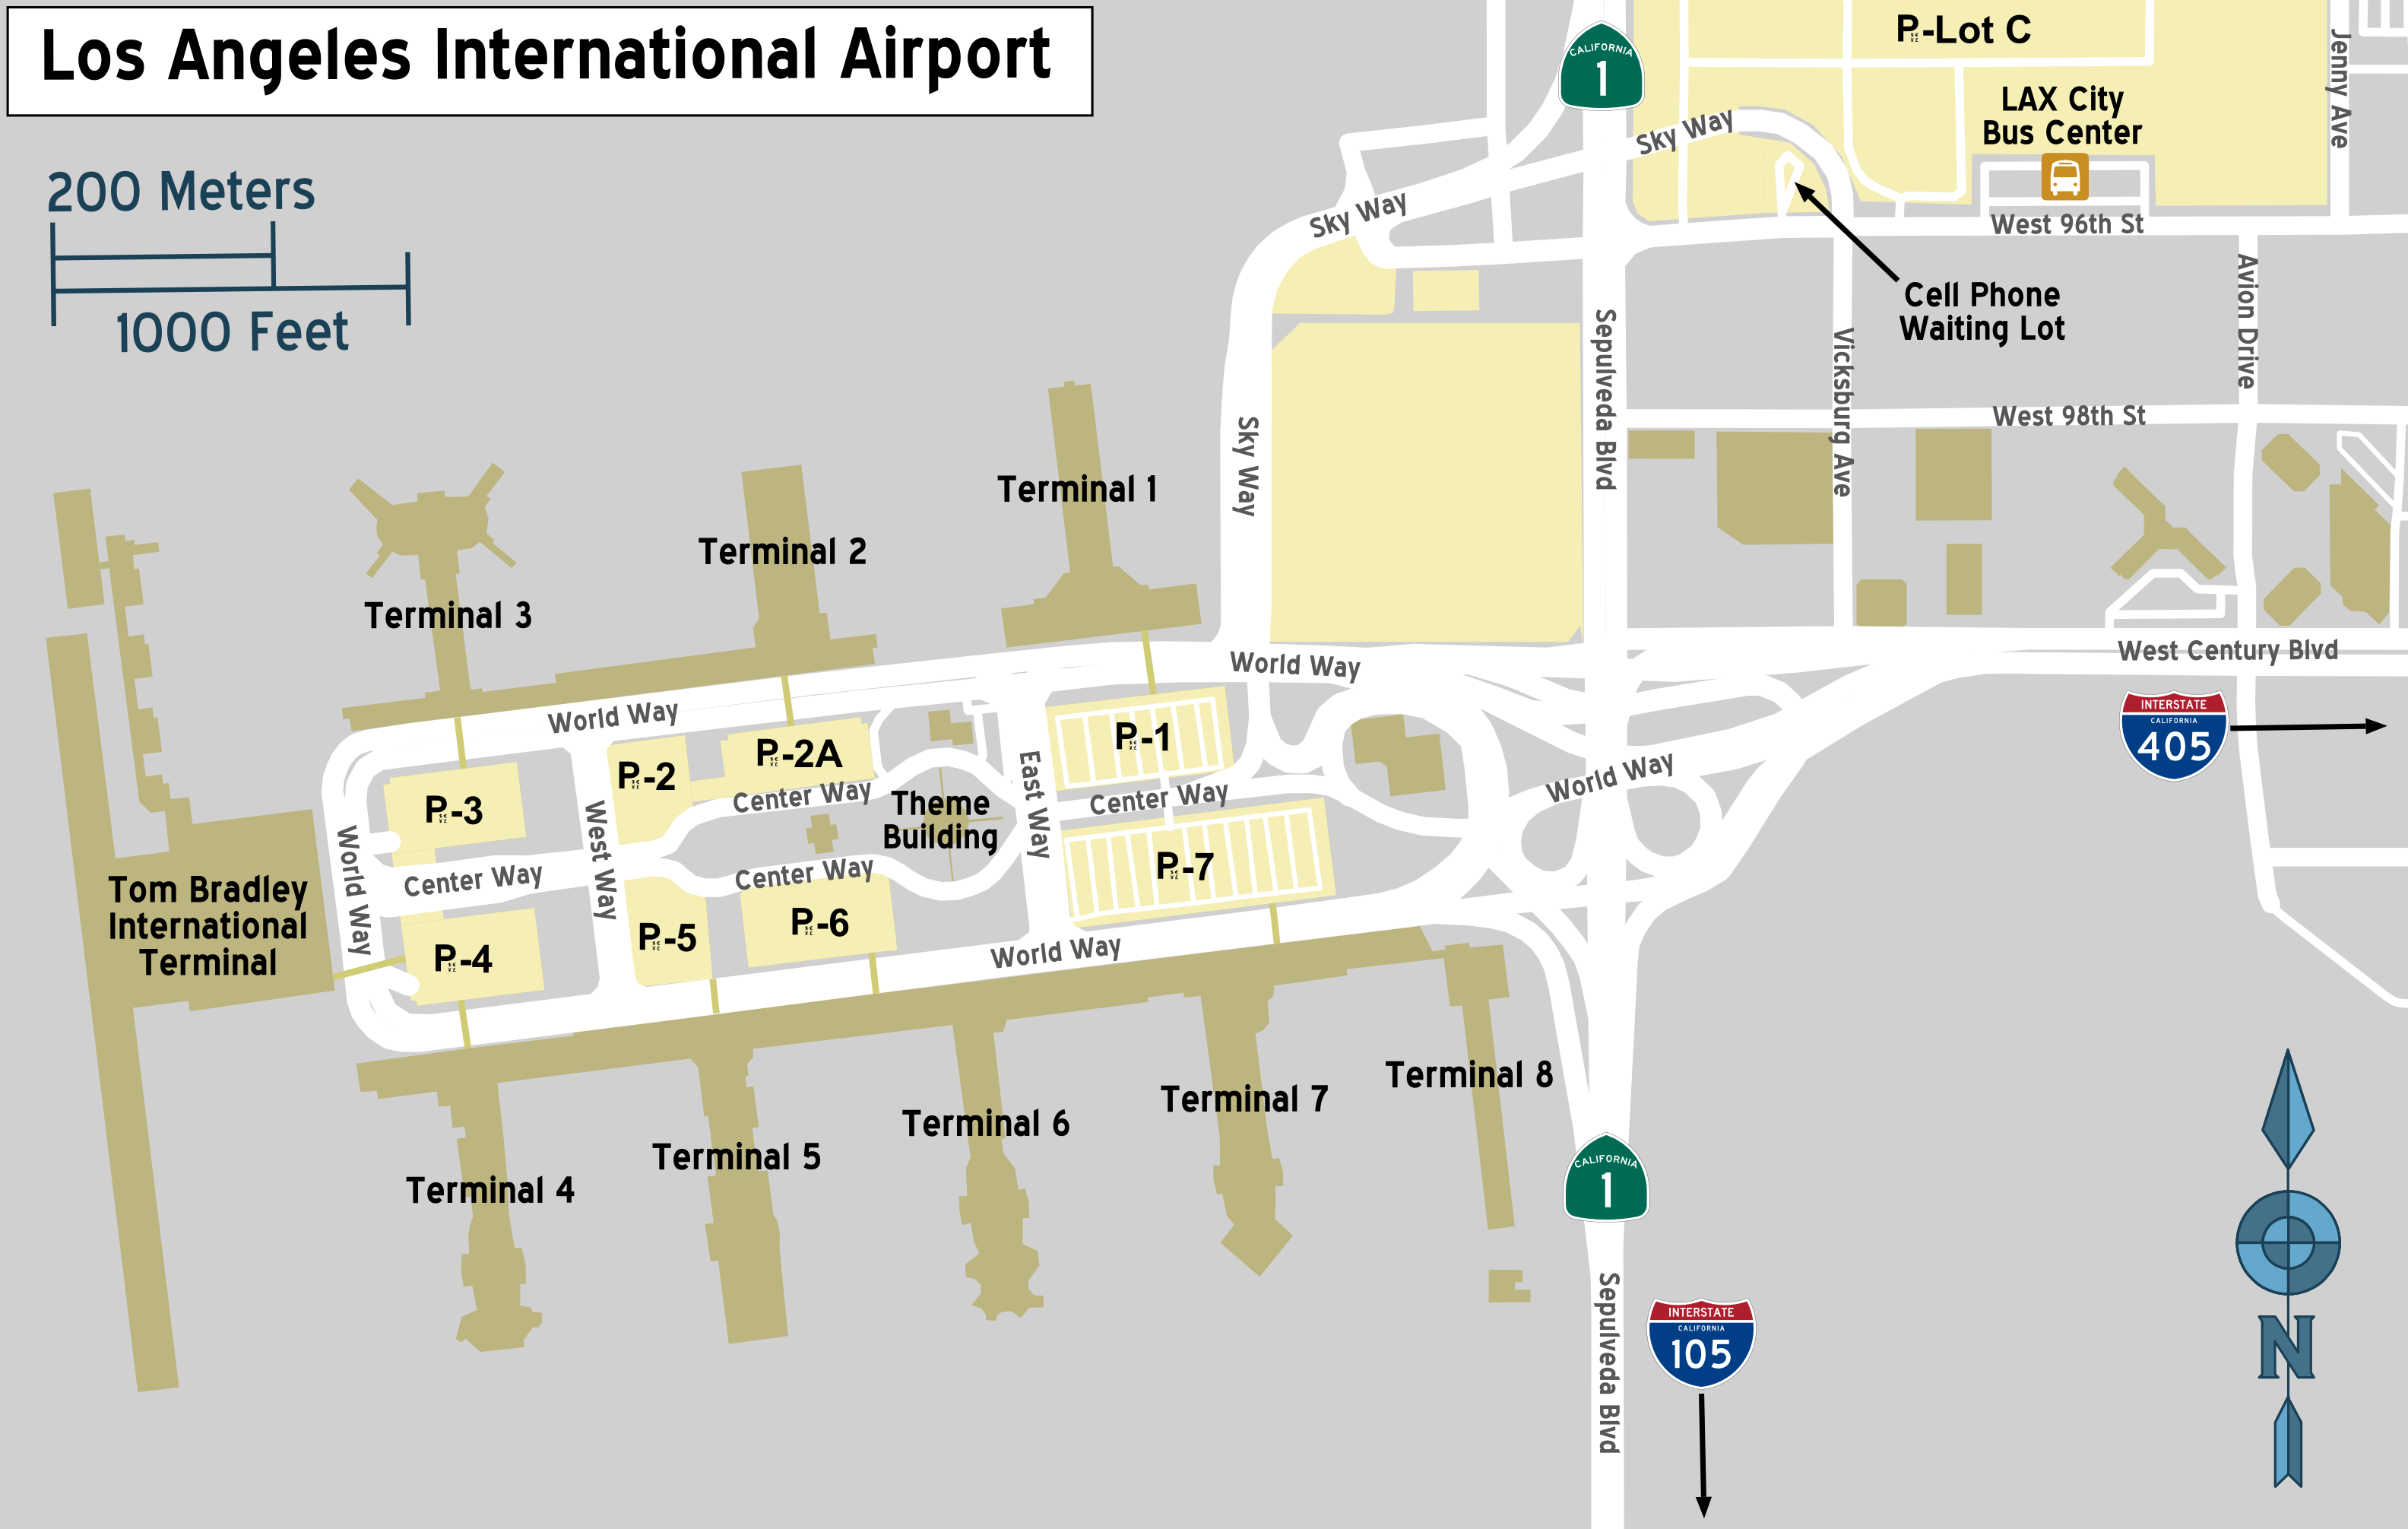 Avis car rental drop off los angeles airport